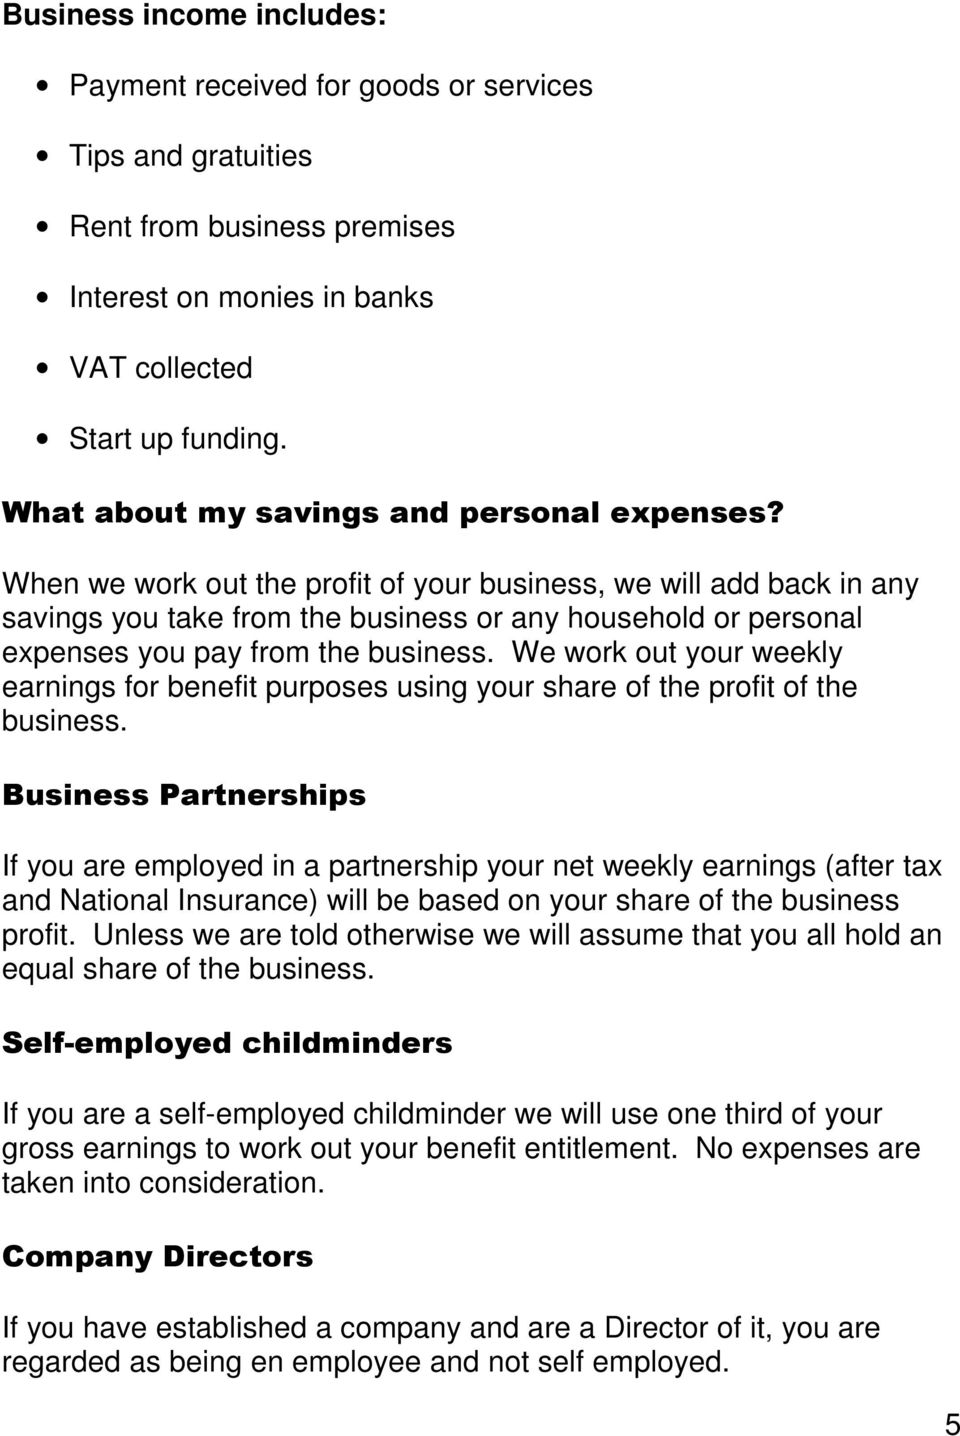 a guide for self employed - pdf